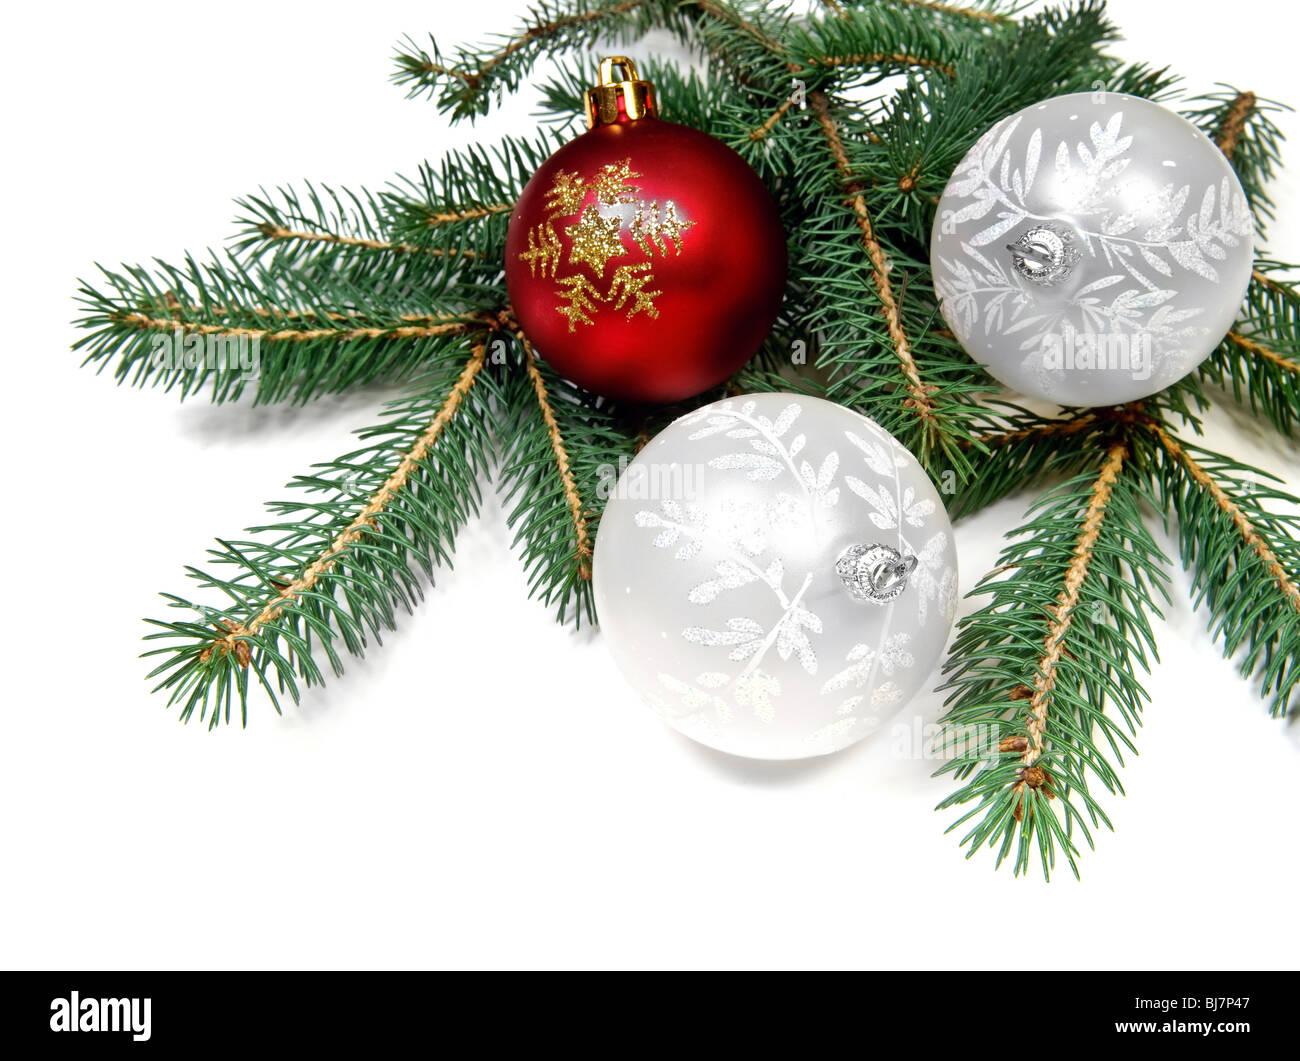 Christmas balls on pine tree branch over white background - Stock Image